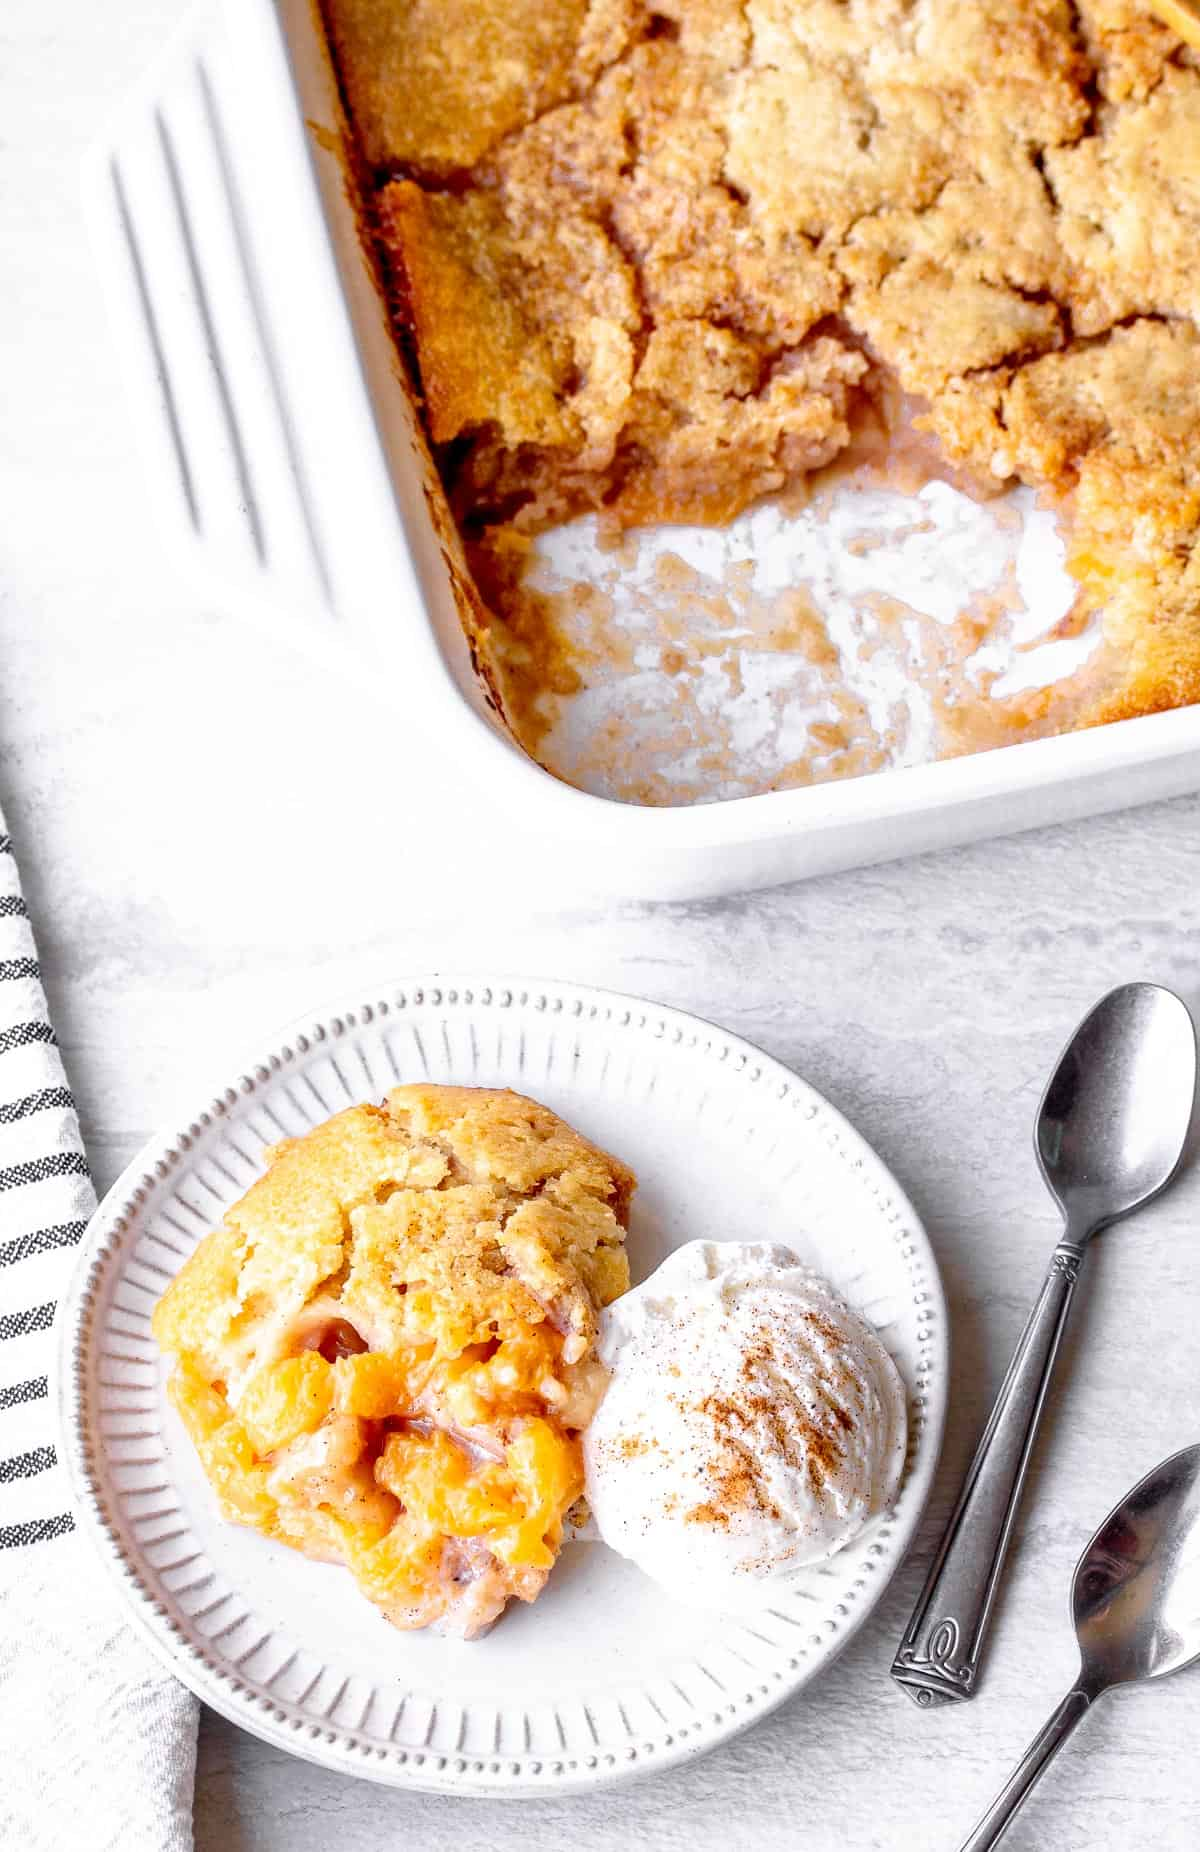 A serving of peach cobbler and vanilla ice cream on a white plate with spoons, a towel and a baking dish in the background